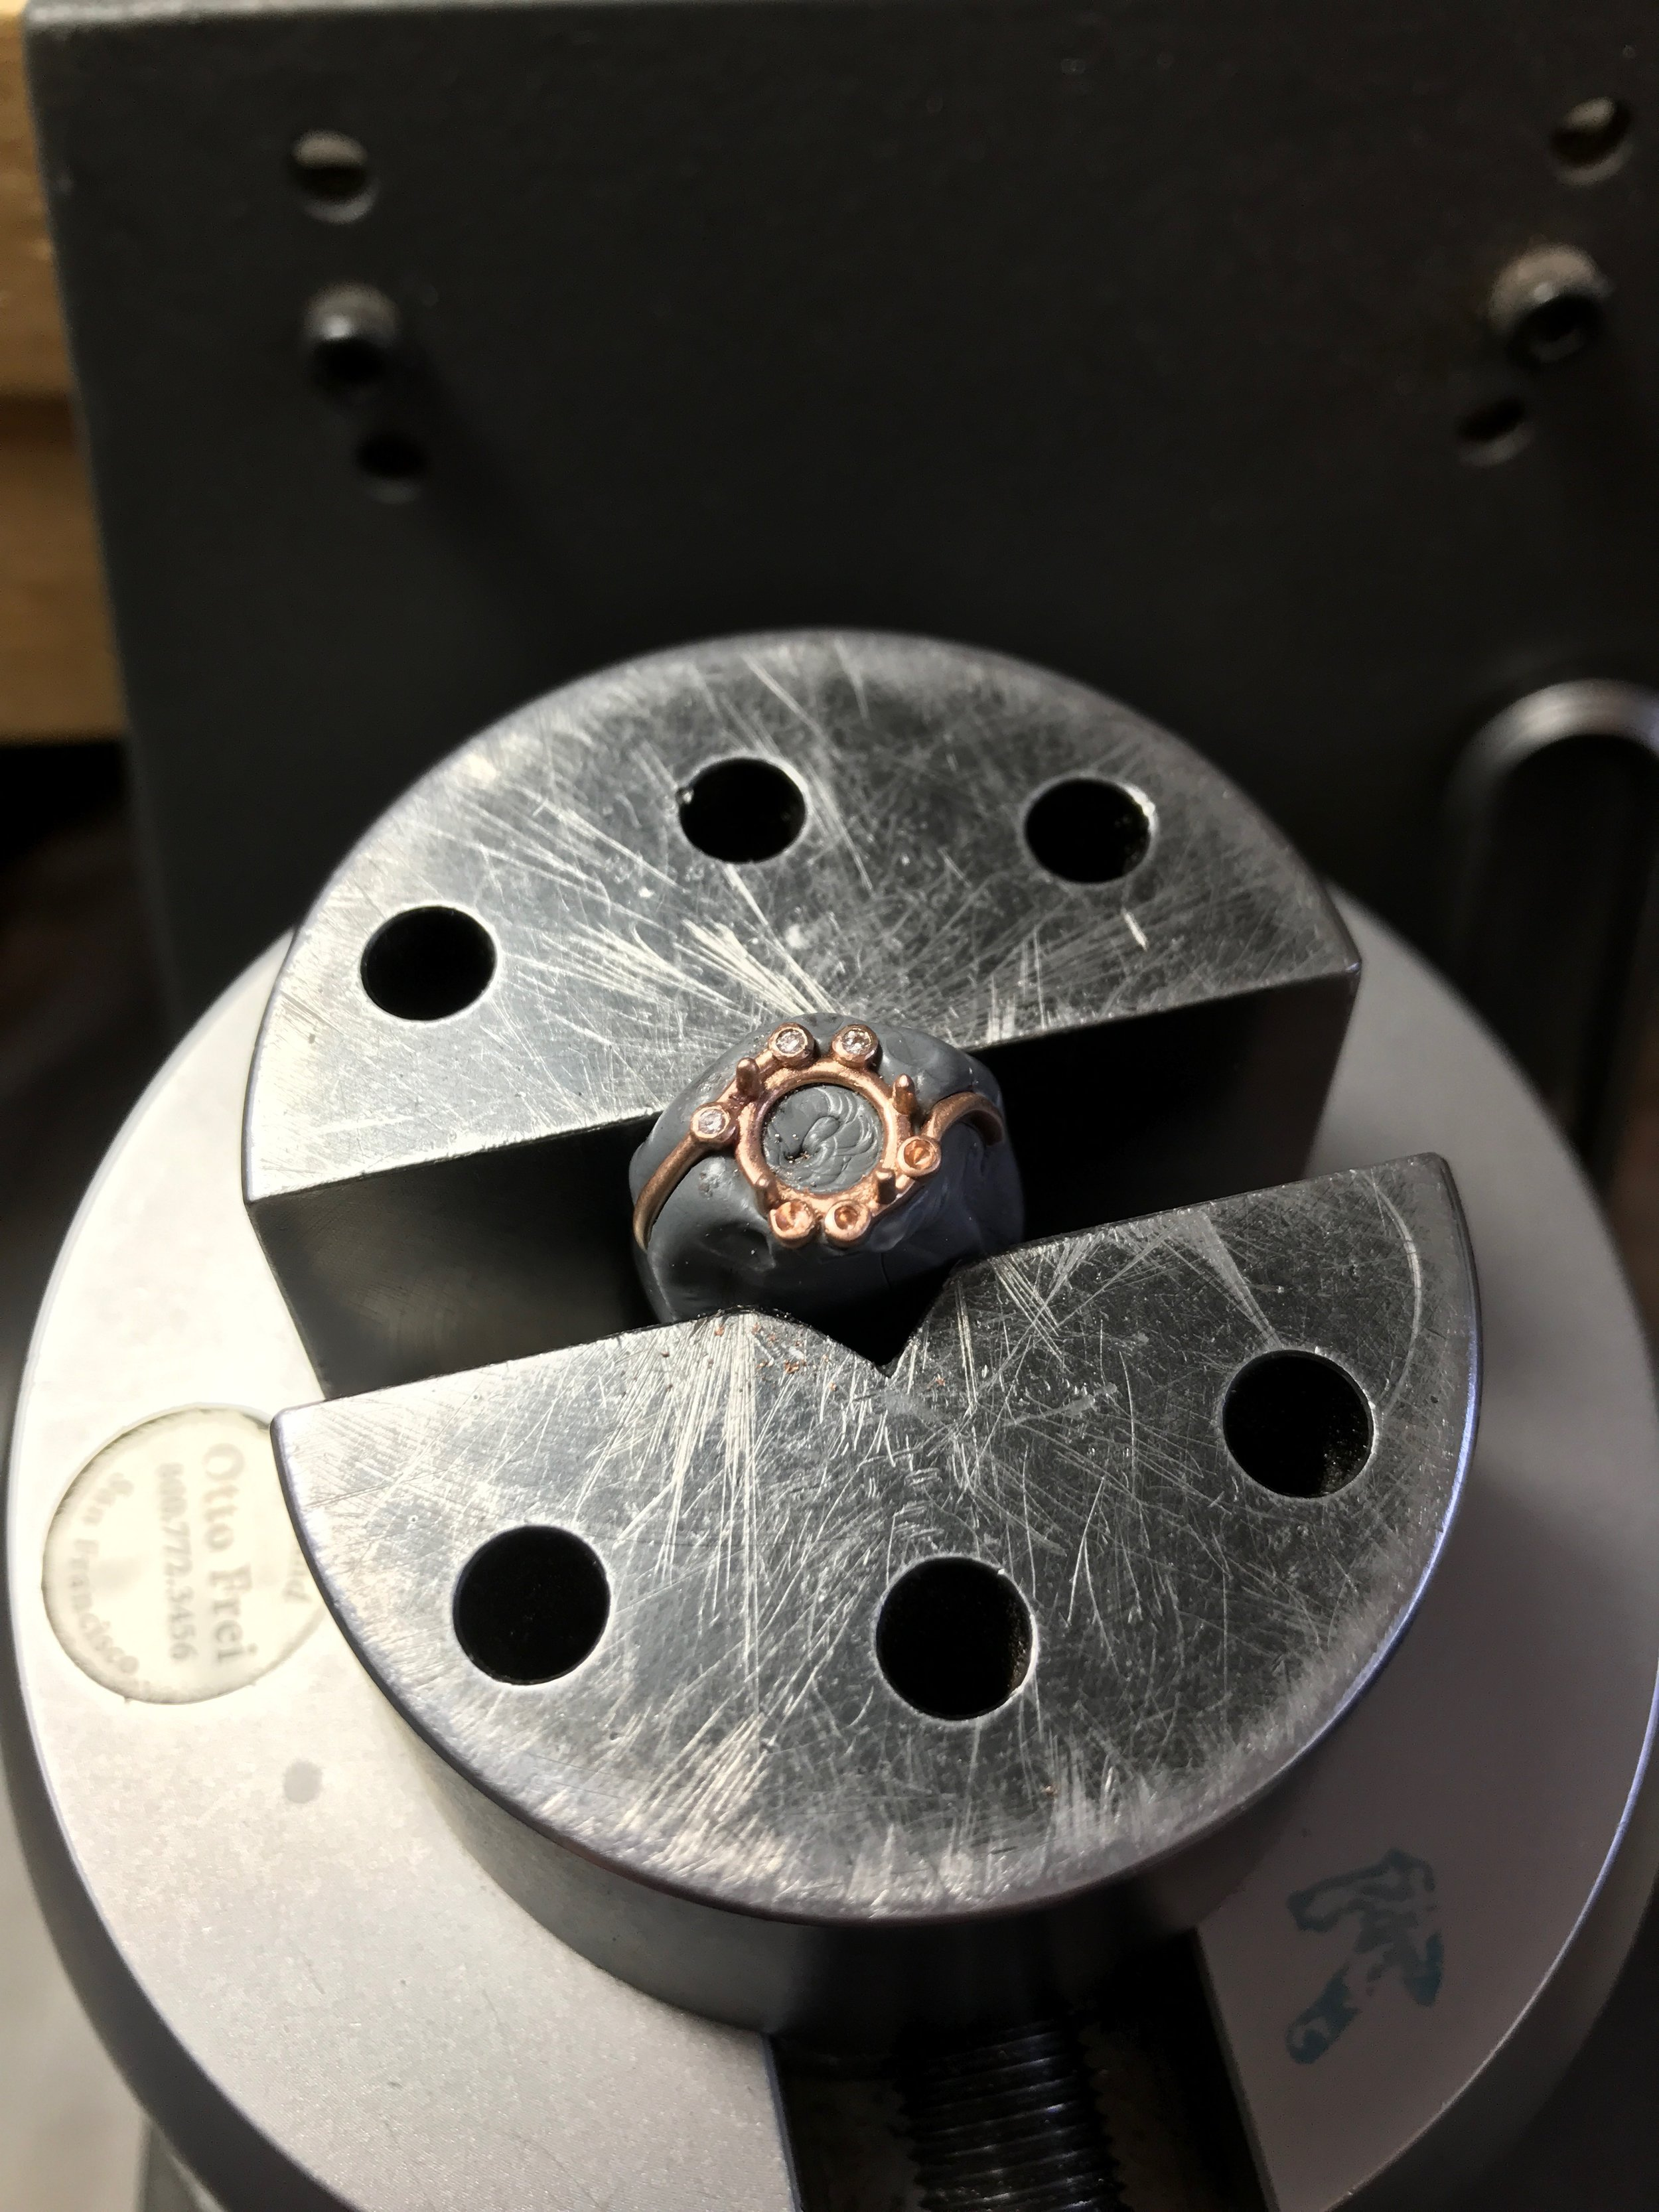 process - Setting the diamonds. The piece is held in thermoplastic and then clamped in an engraver's block.